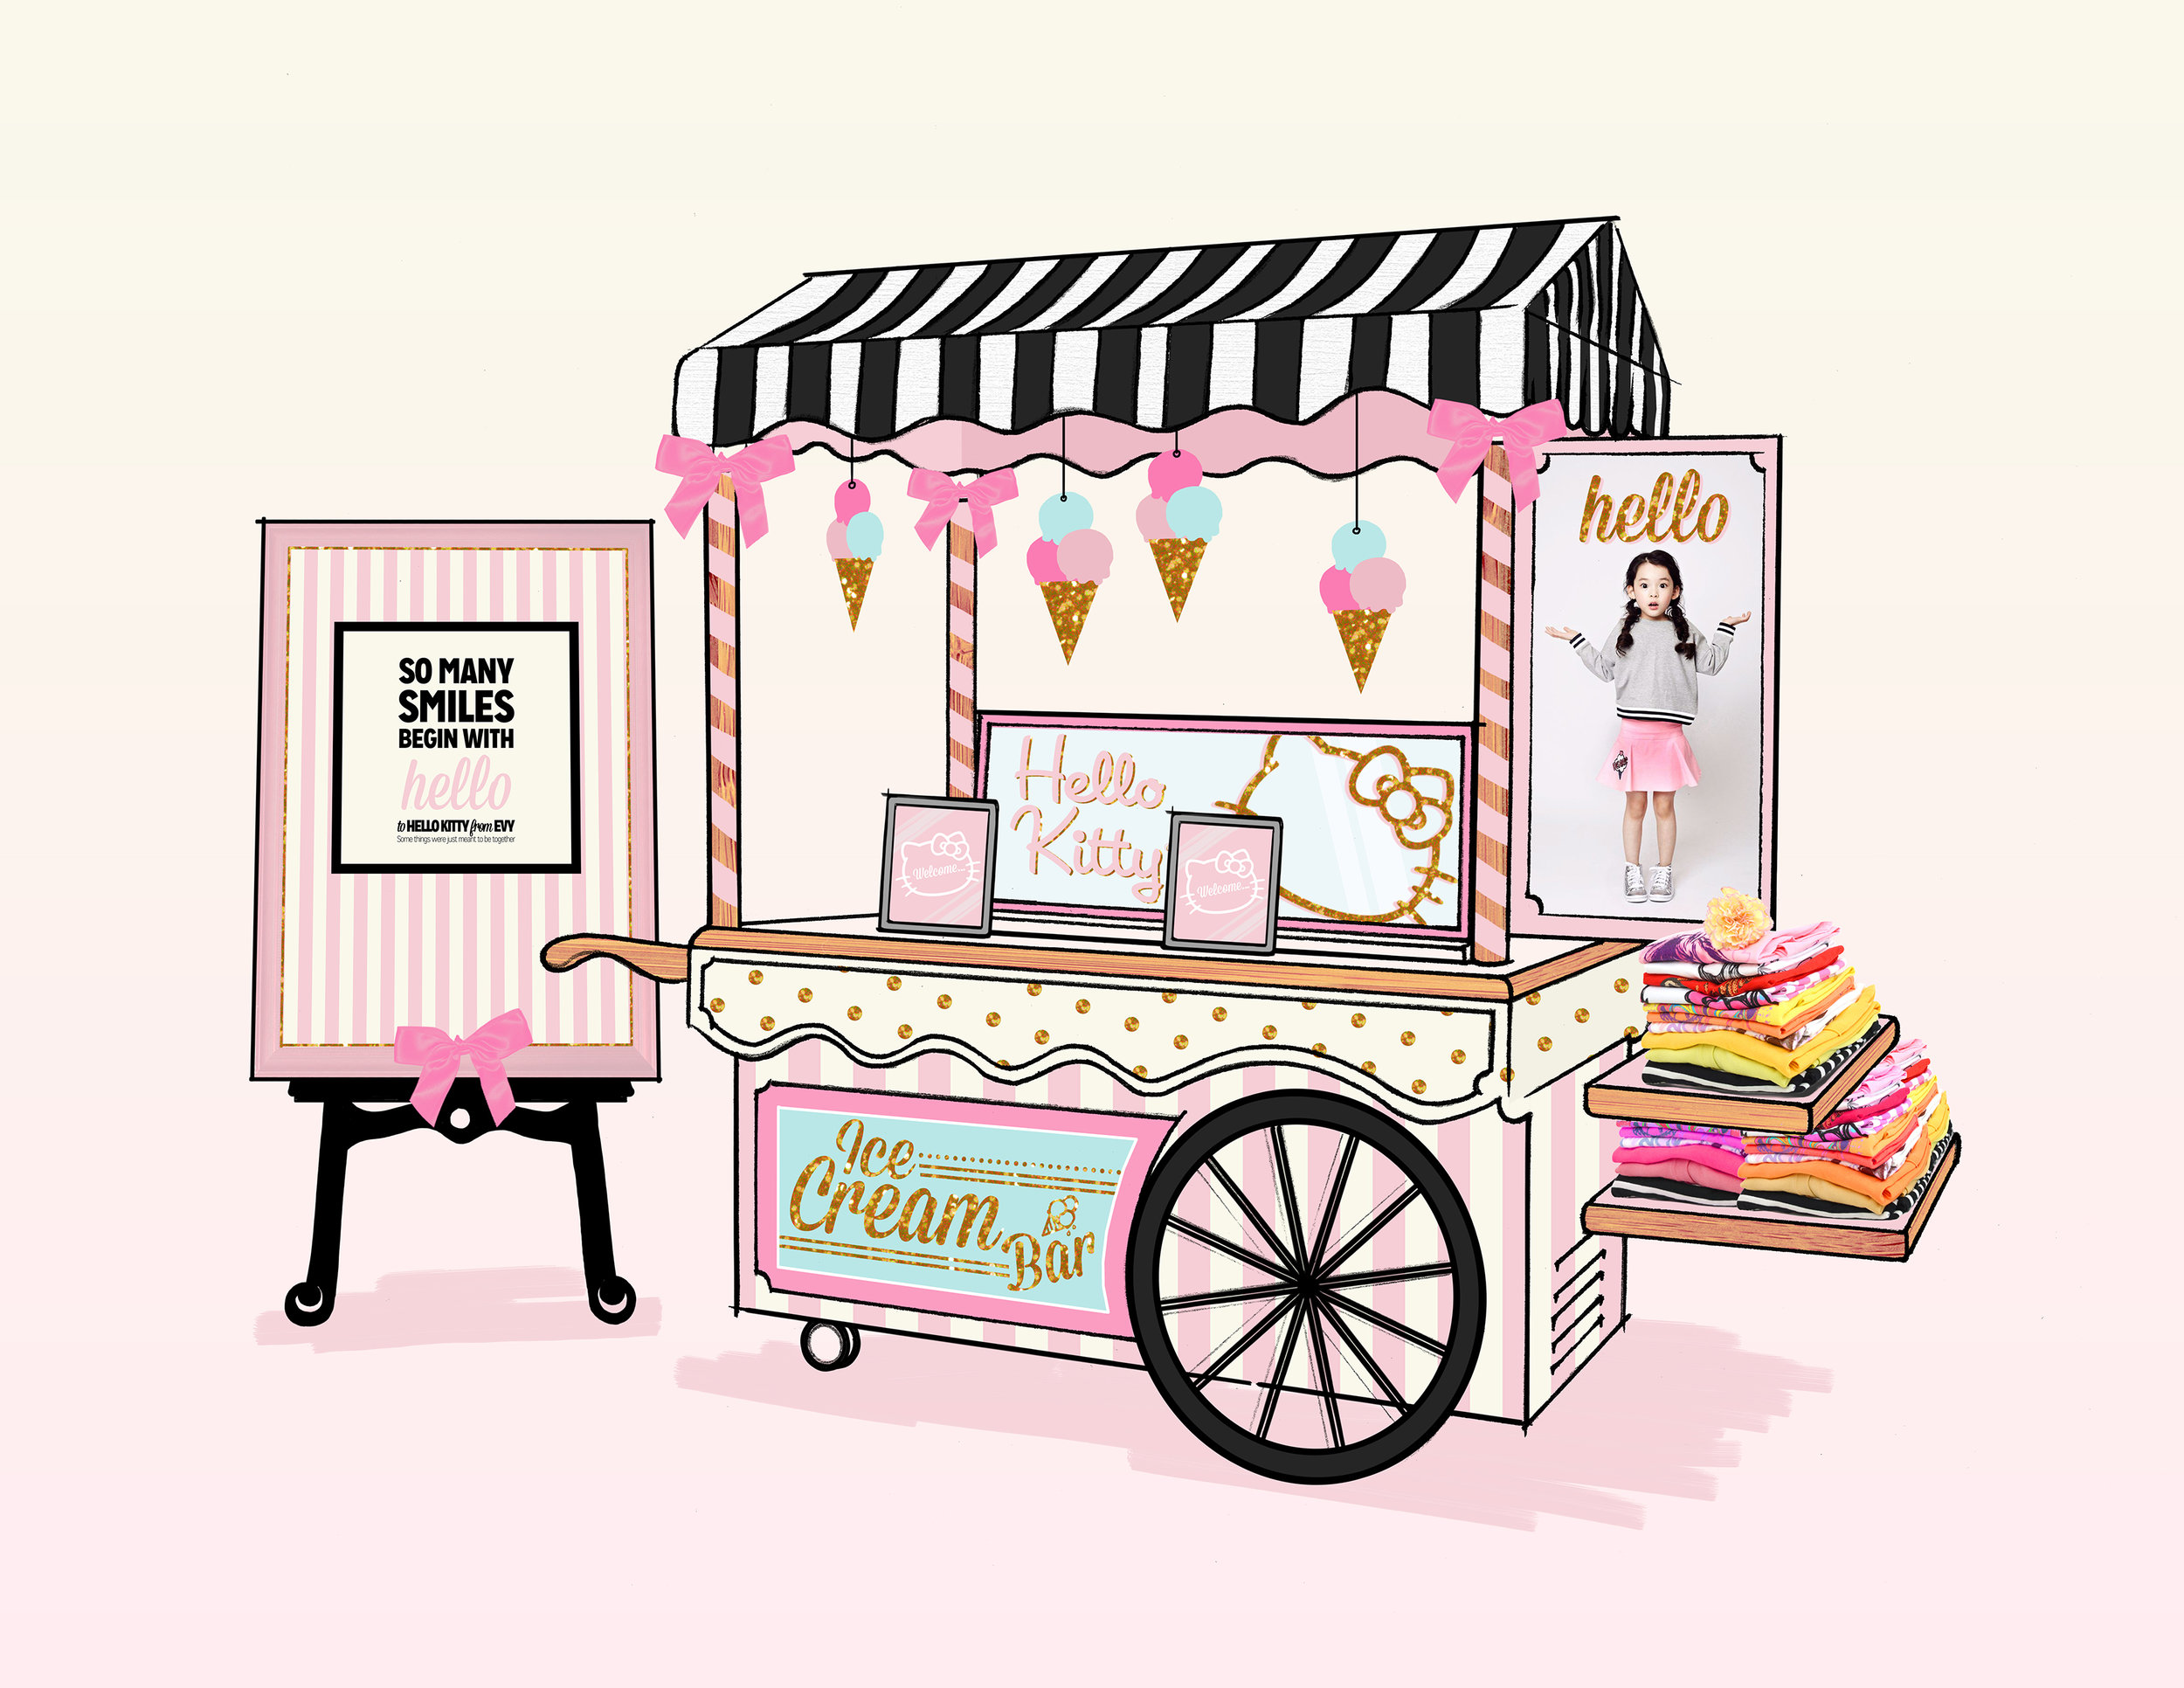 Merchandise Cart concept with iPad access, to search product and novelty Hello Kitty information.